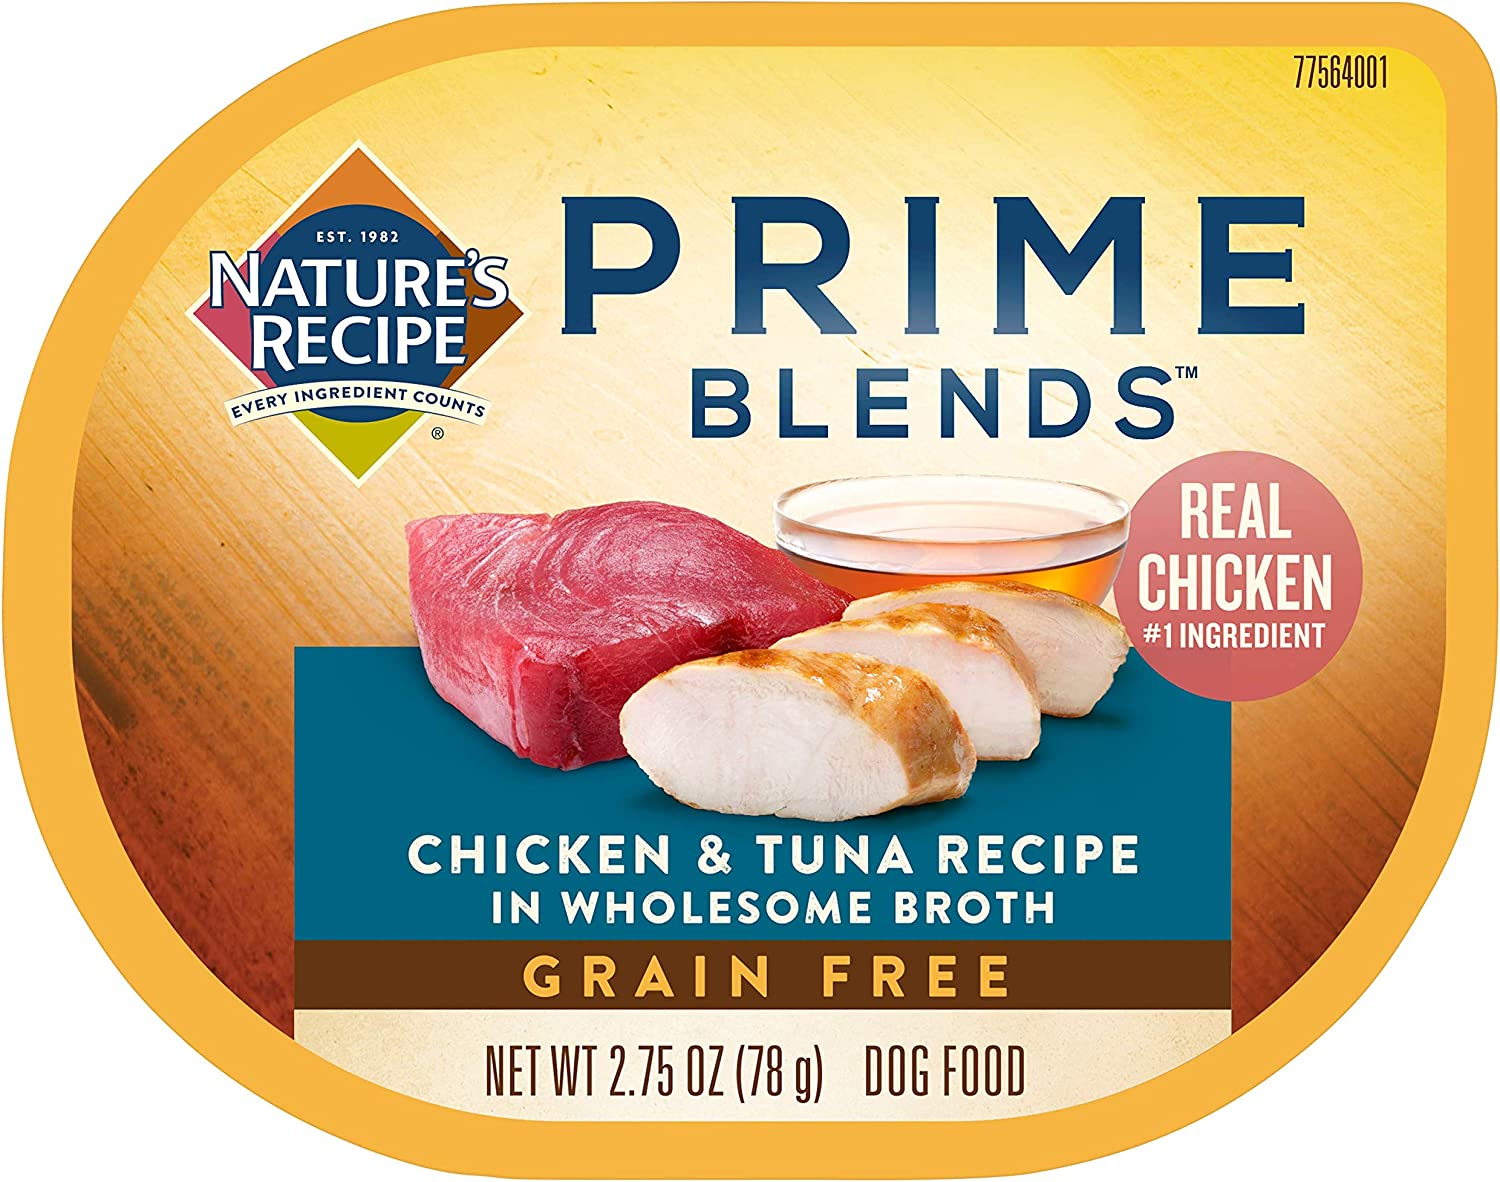 Nature's Recipe Prime Blends Wet Dog Food, Chicken & Tuna Recipe, 2.75 Ounce Cup (Pack of 12)